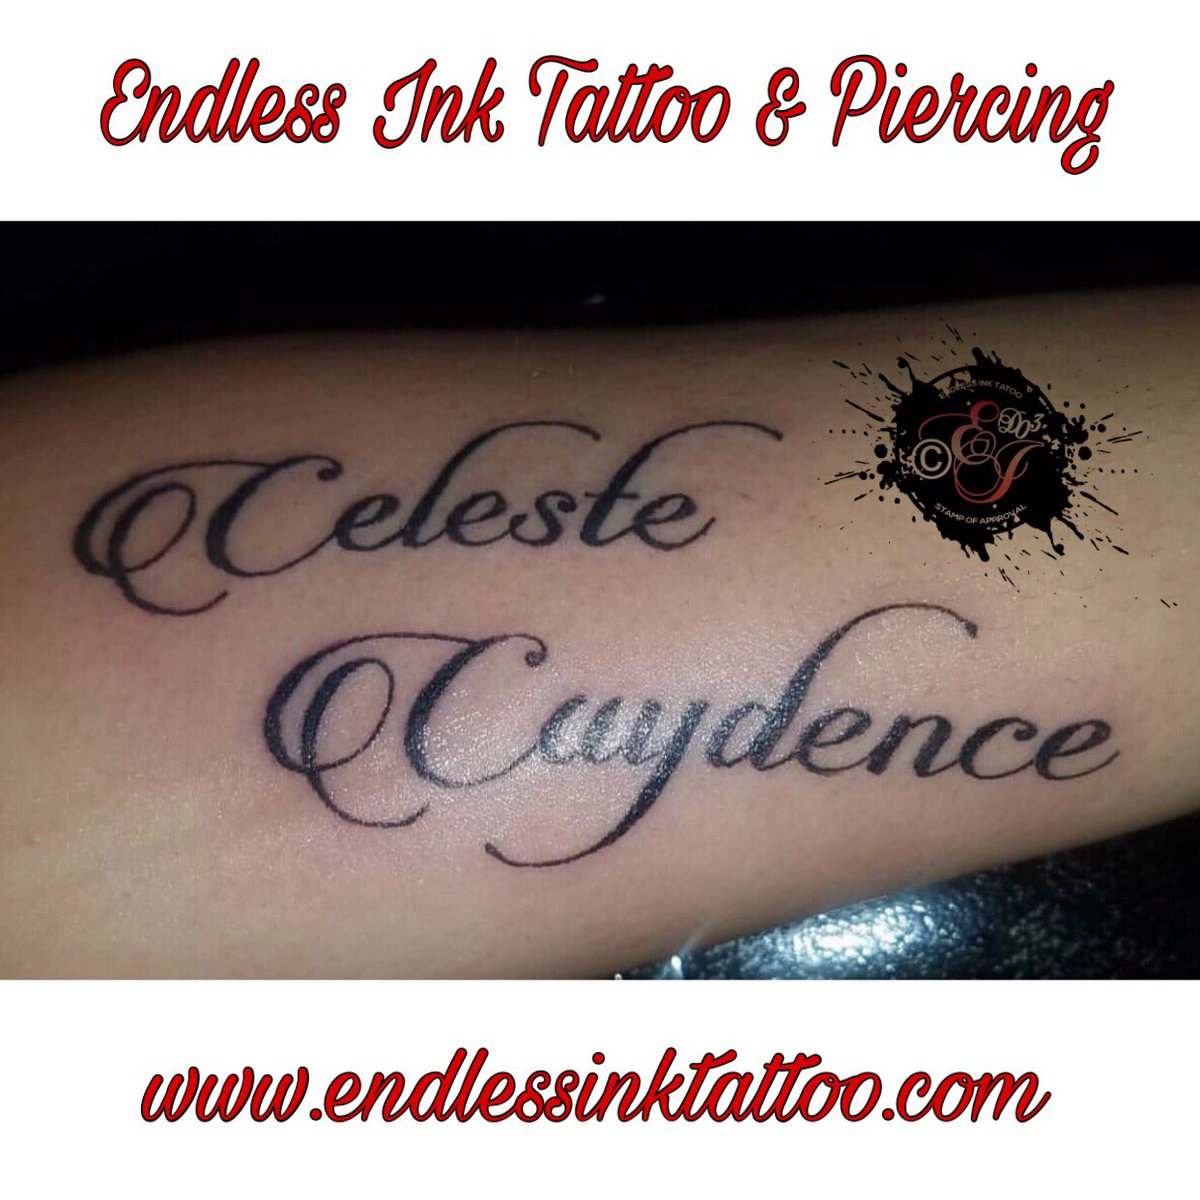 3a99b3e729bbd #endlessinktattoo303 #denvertattooshop #tattooshop #tattoos  #bodymodification #tattoolifepic.twitter.com/CEpwymW8uF